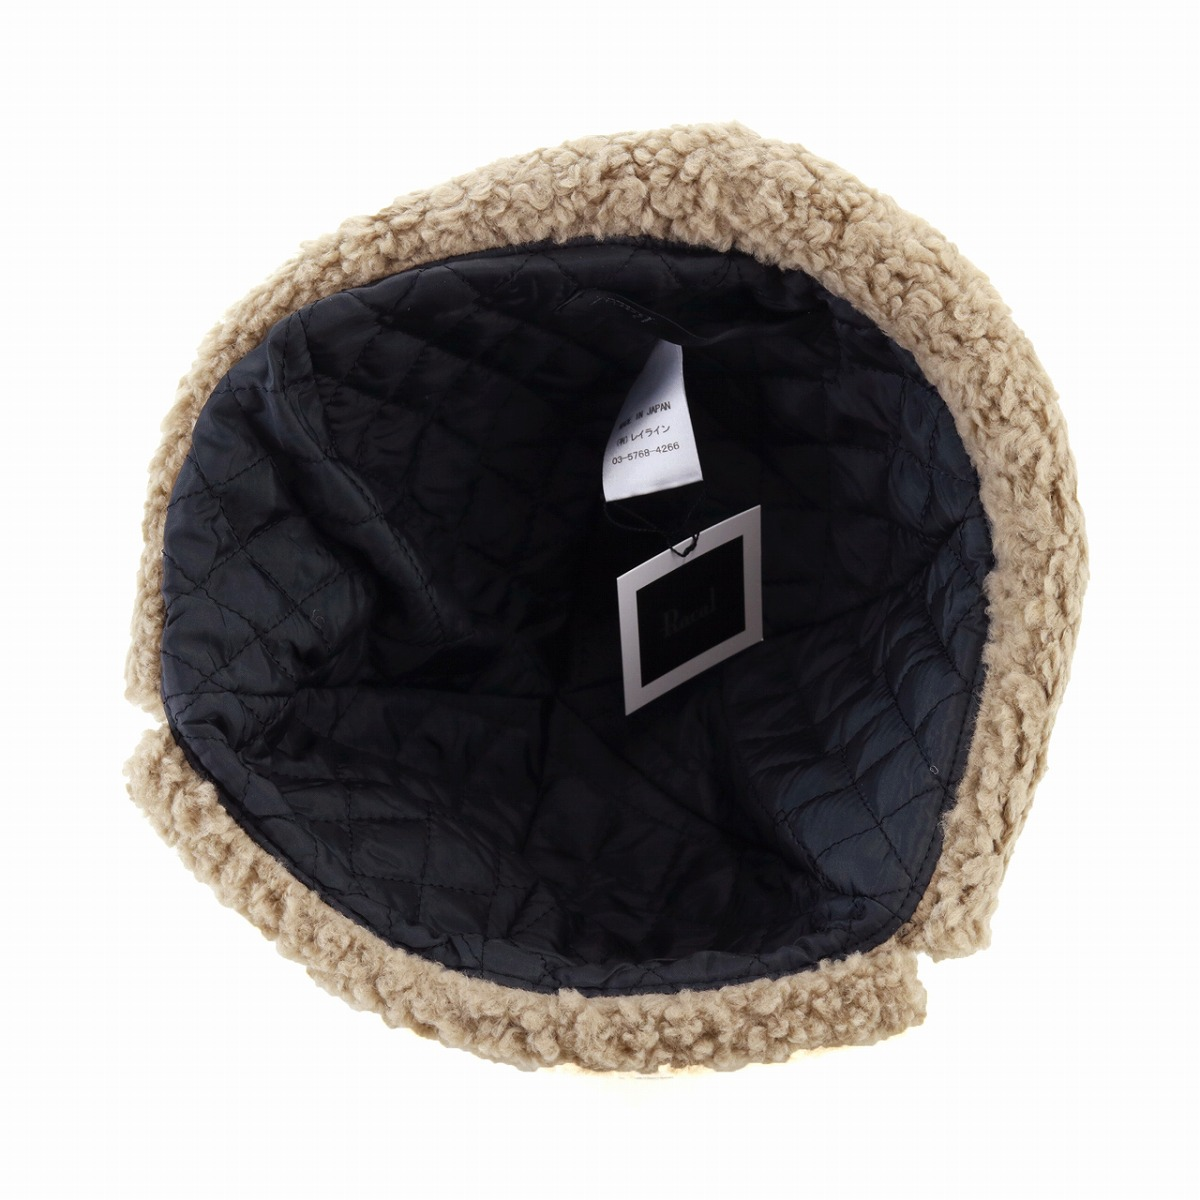 52d4a9b8937 A silhouette compact clearly which avoided waste in comparison with other  flight hats. What it is easy to be familiar with coordinates willingly and  it is ...